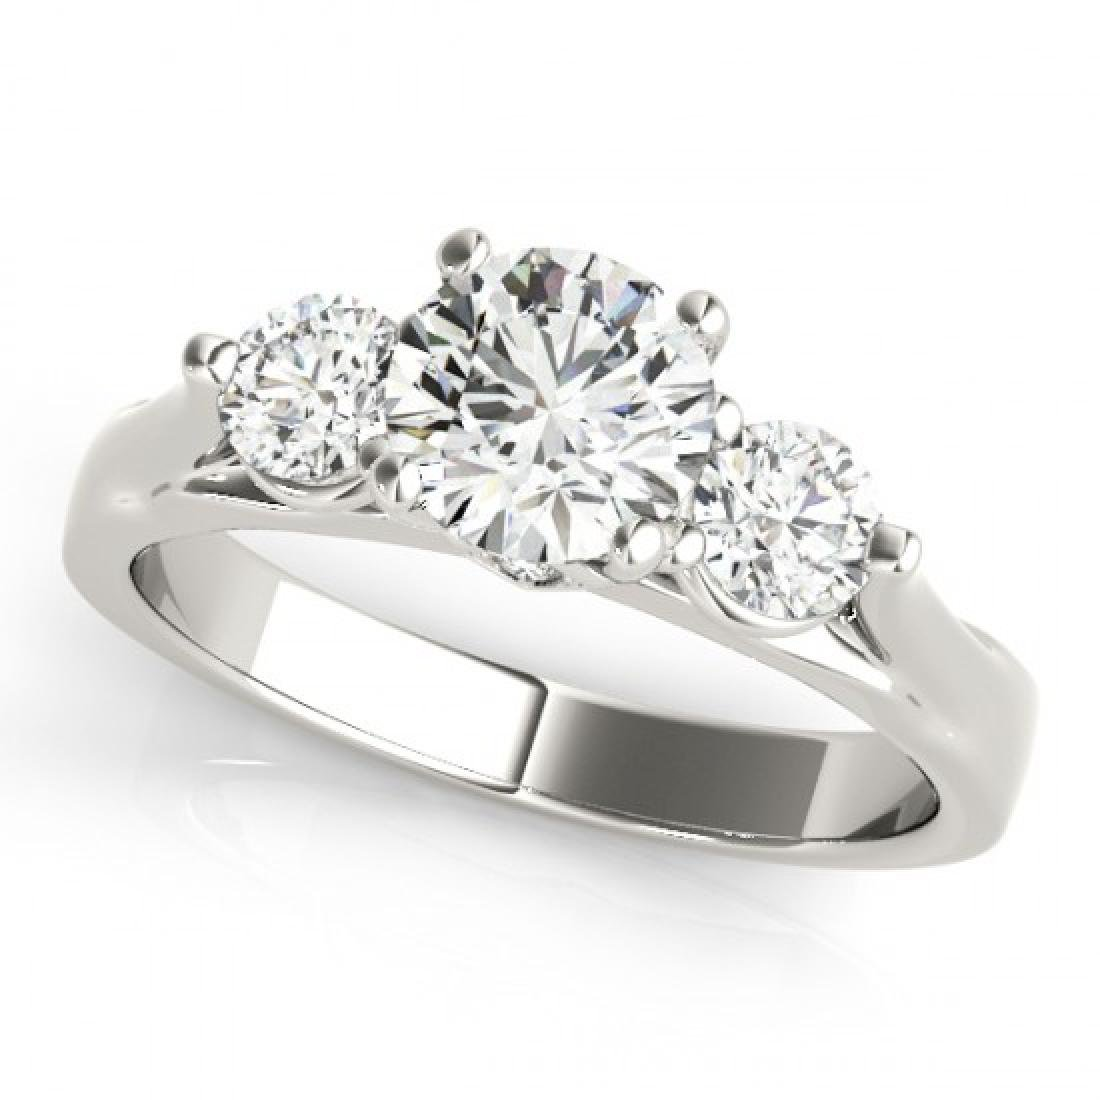 1.5 CTW Certified VS/SI Diamond 3 Stone Ring 18K White